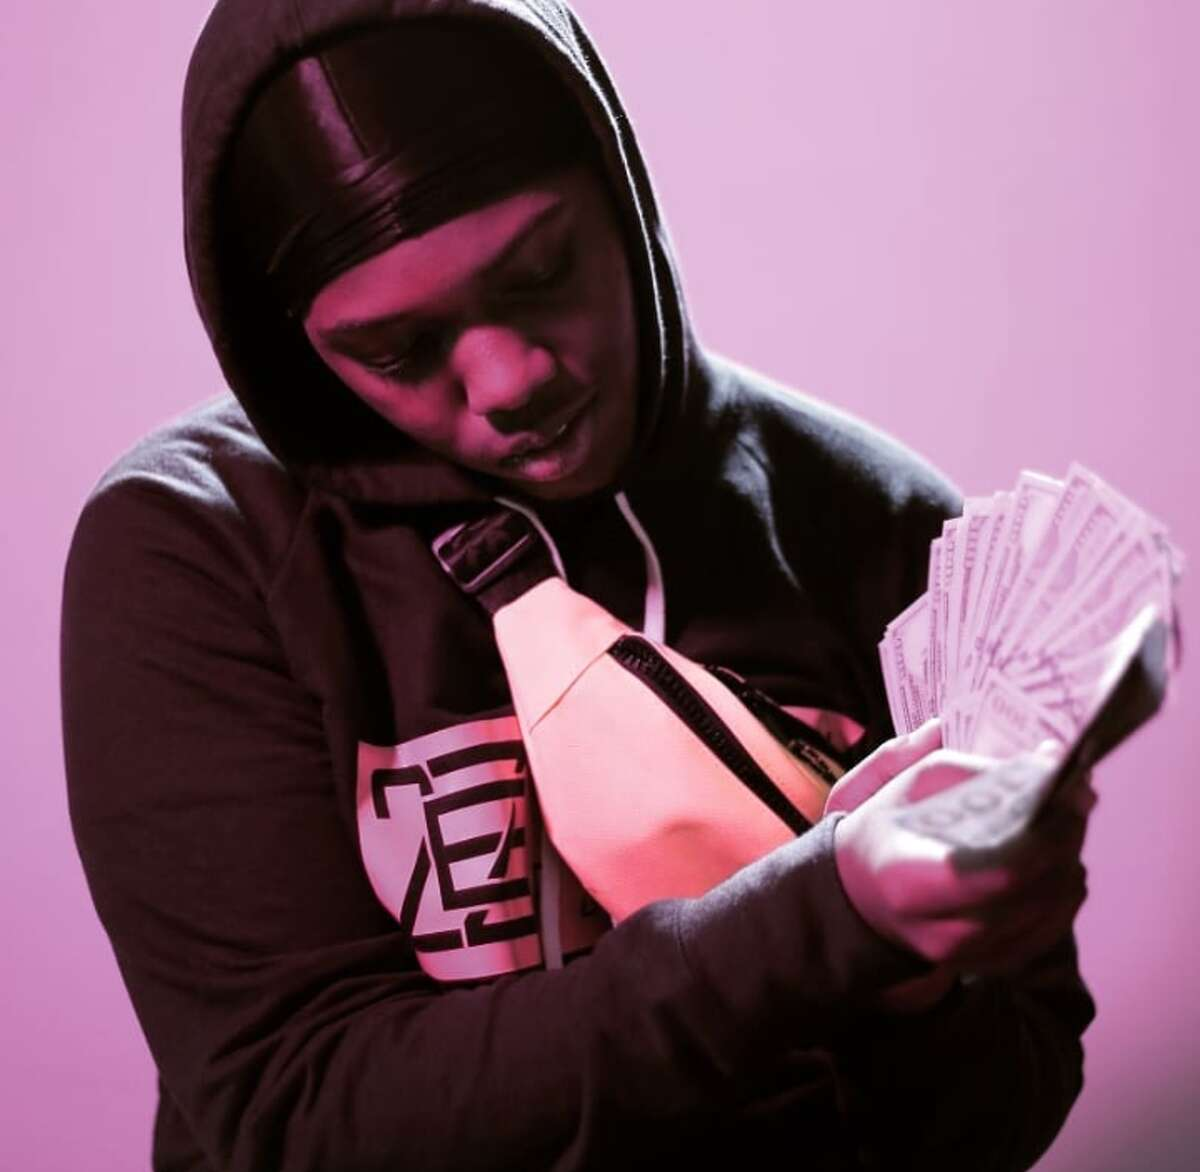 ZaniefWashington holds fake money at a photo shoot at Youth FX, an organization that empowers young people in the Capitol Region through media arts and digital film.